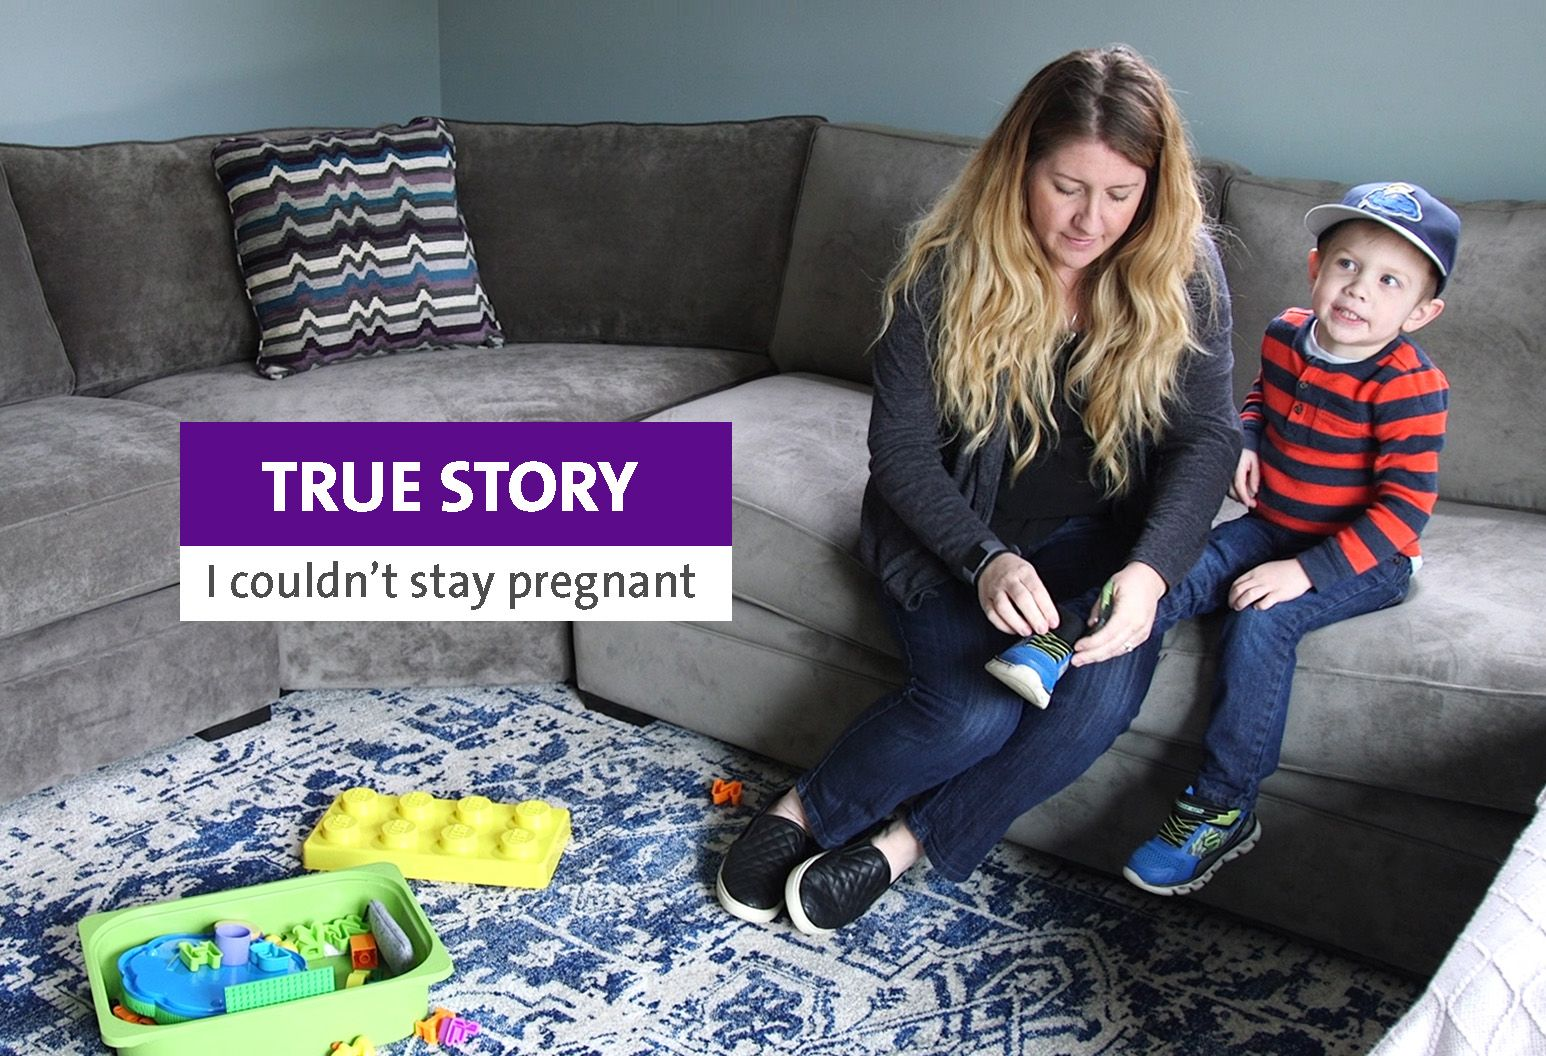 A woman with long blond hair is tying the shoe os a young boy wearing a blue baseball cap and stripped shirt. They are sitting ona  gray couch and there are toys on the blue and white rug.